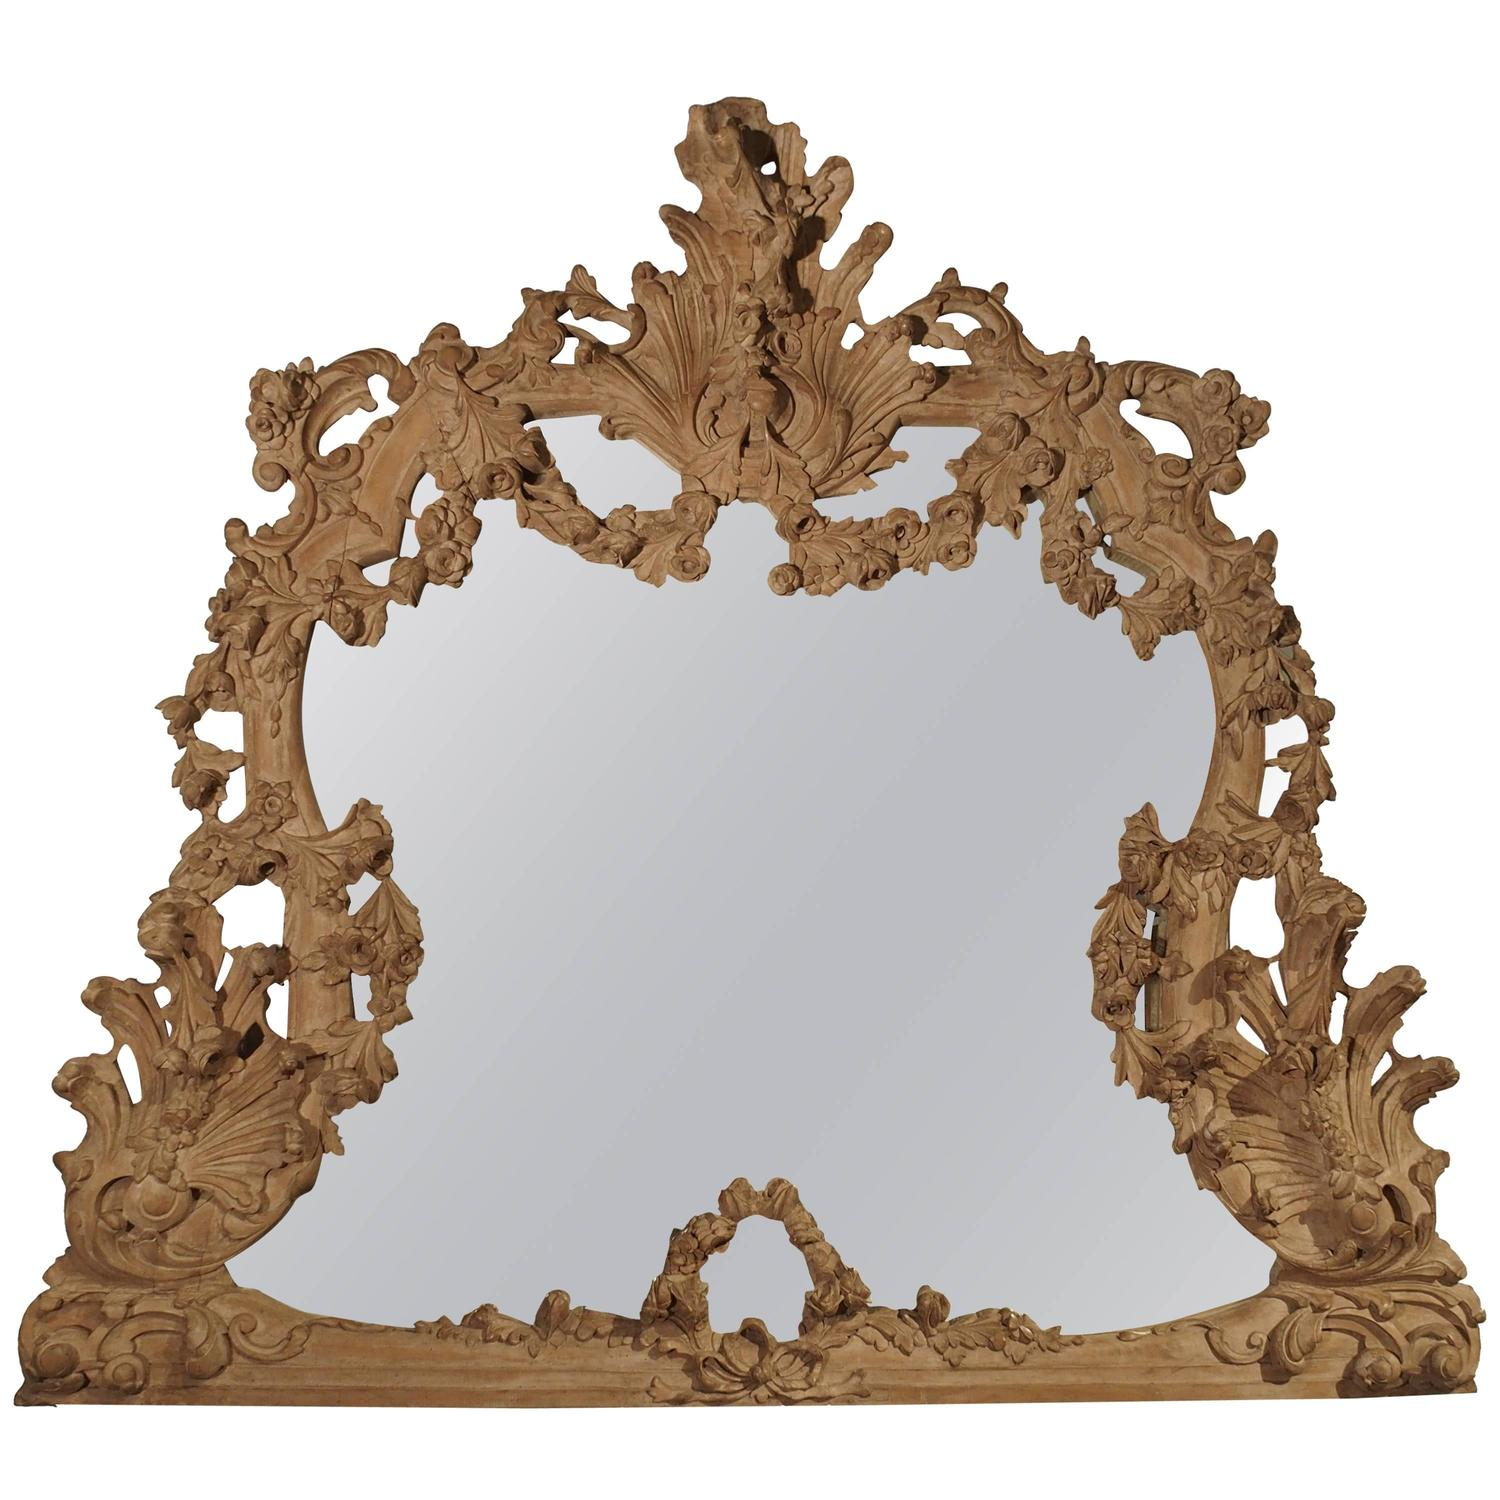 Large antique stripped walnut wood rococo style mirror for Large wooden mirrors for sale